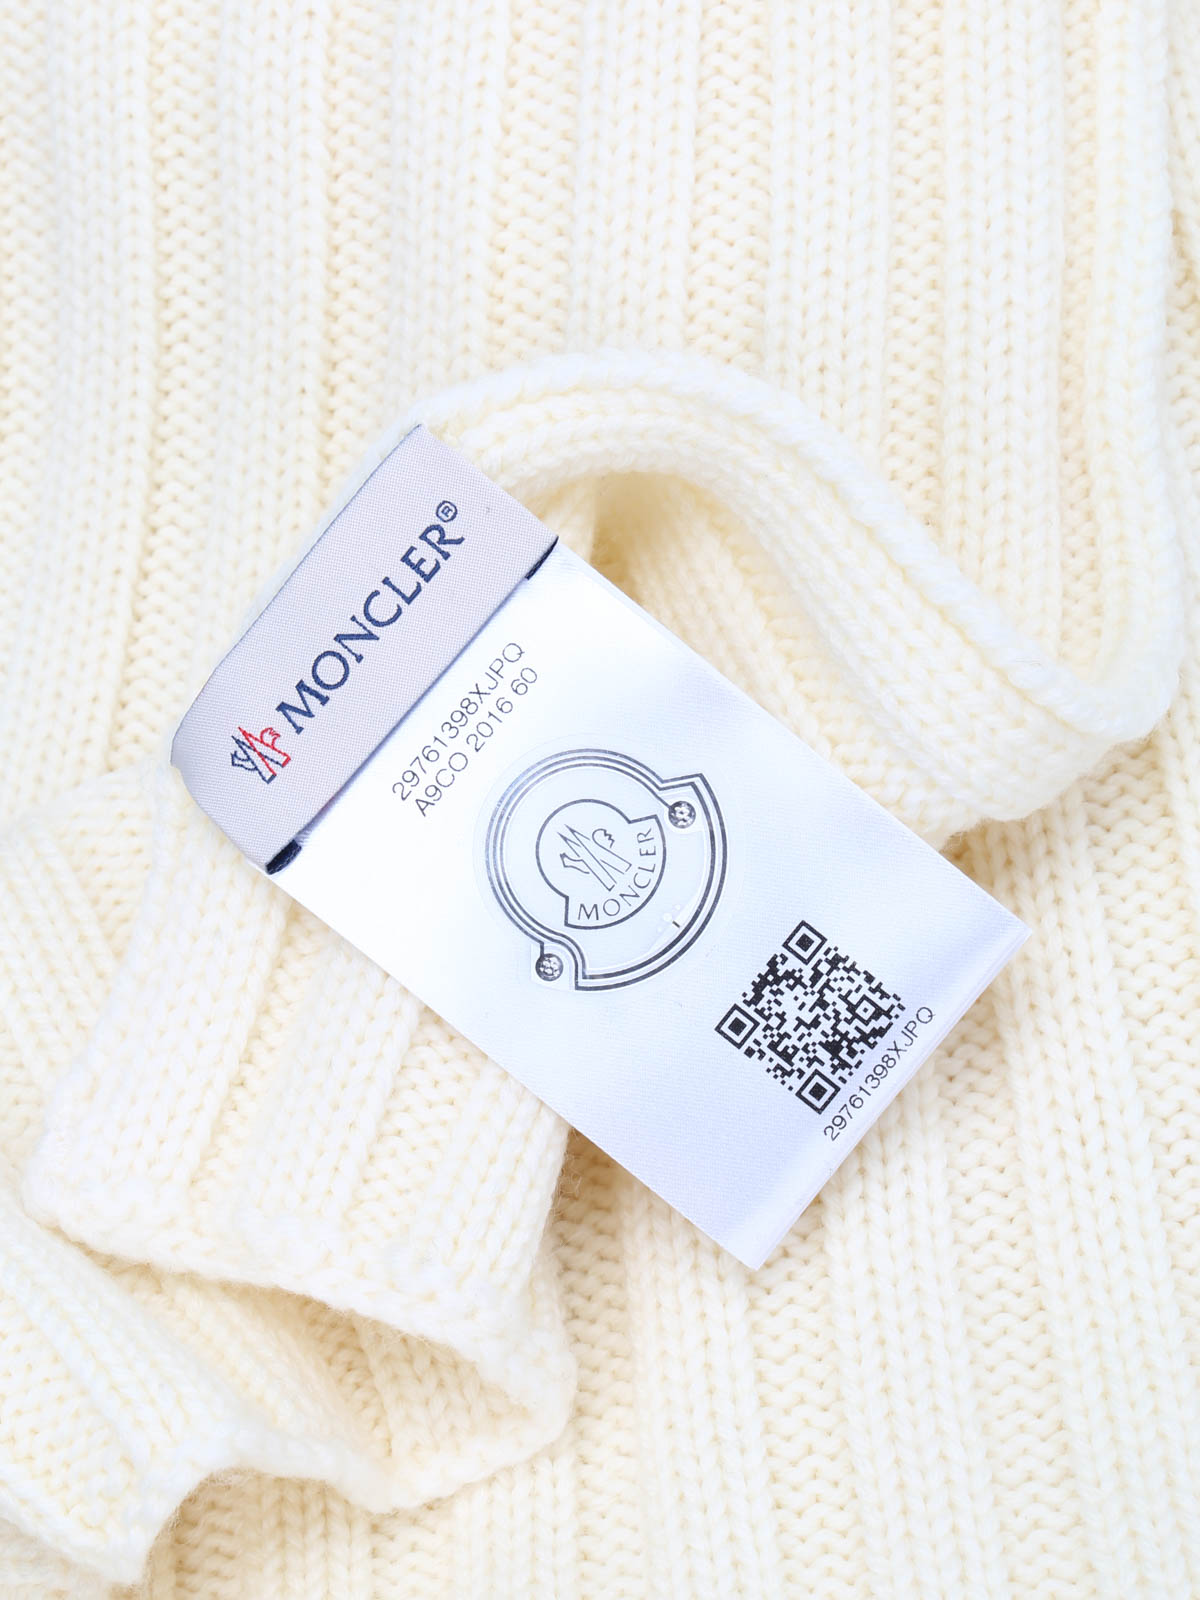 64e95d8ea6a1 Moncler - Rib knitted virgin wool scarf - scarves - B2 093 0002400 ...